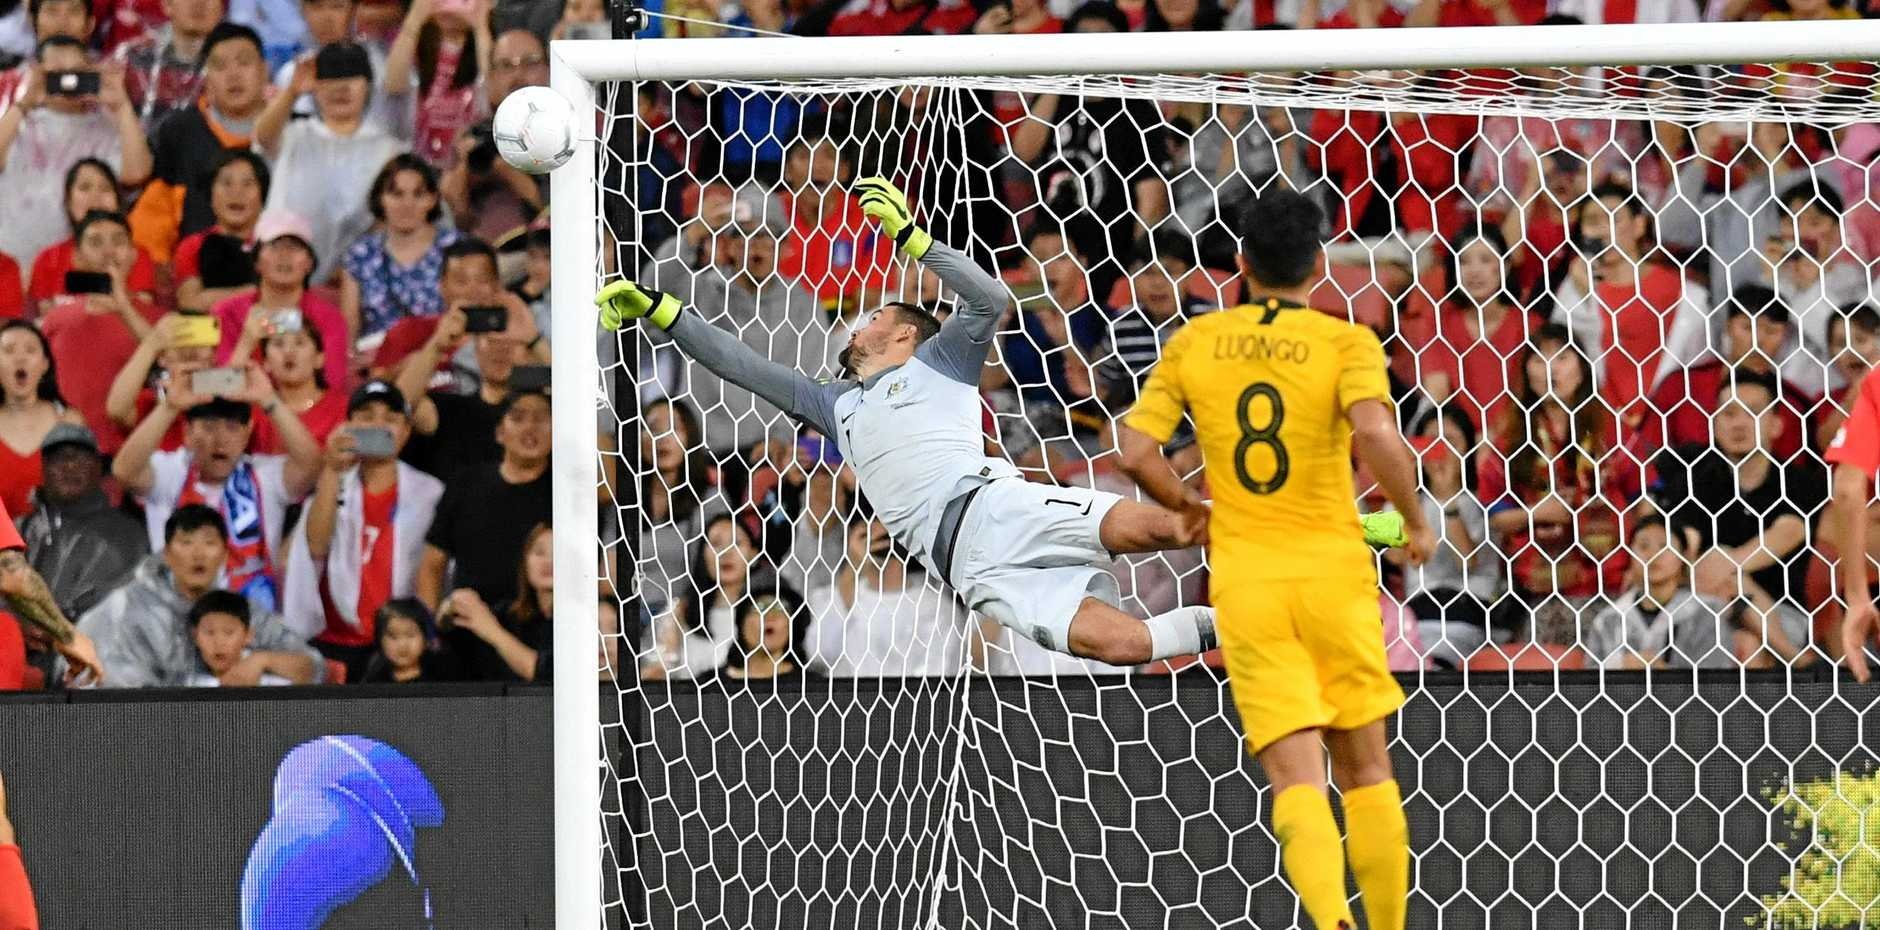 Mat Ryan makes a save for the Socceroos during their International friendly against the Korea Republic at Suncorp Stadium on November 17, 2018. Picture: Darren England/AAP